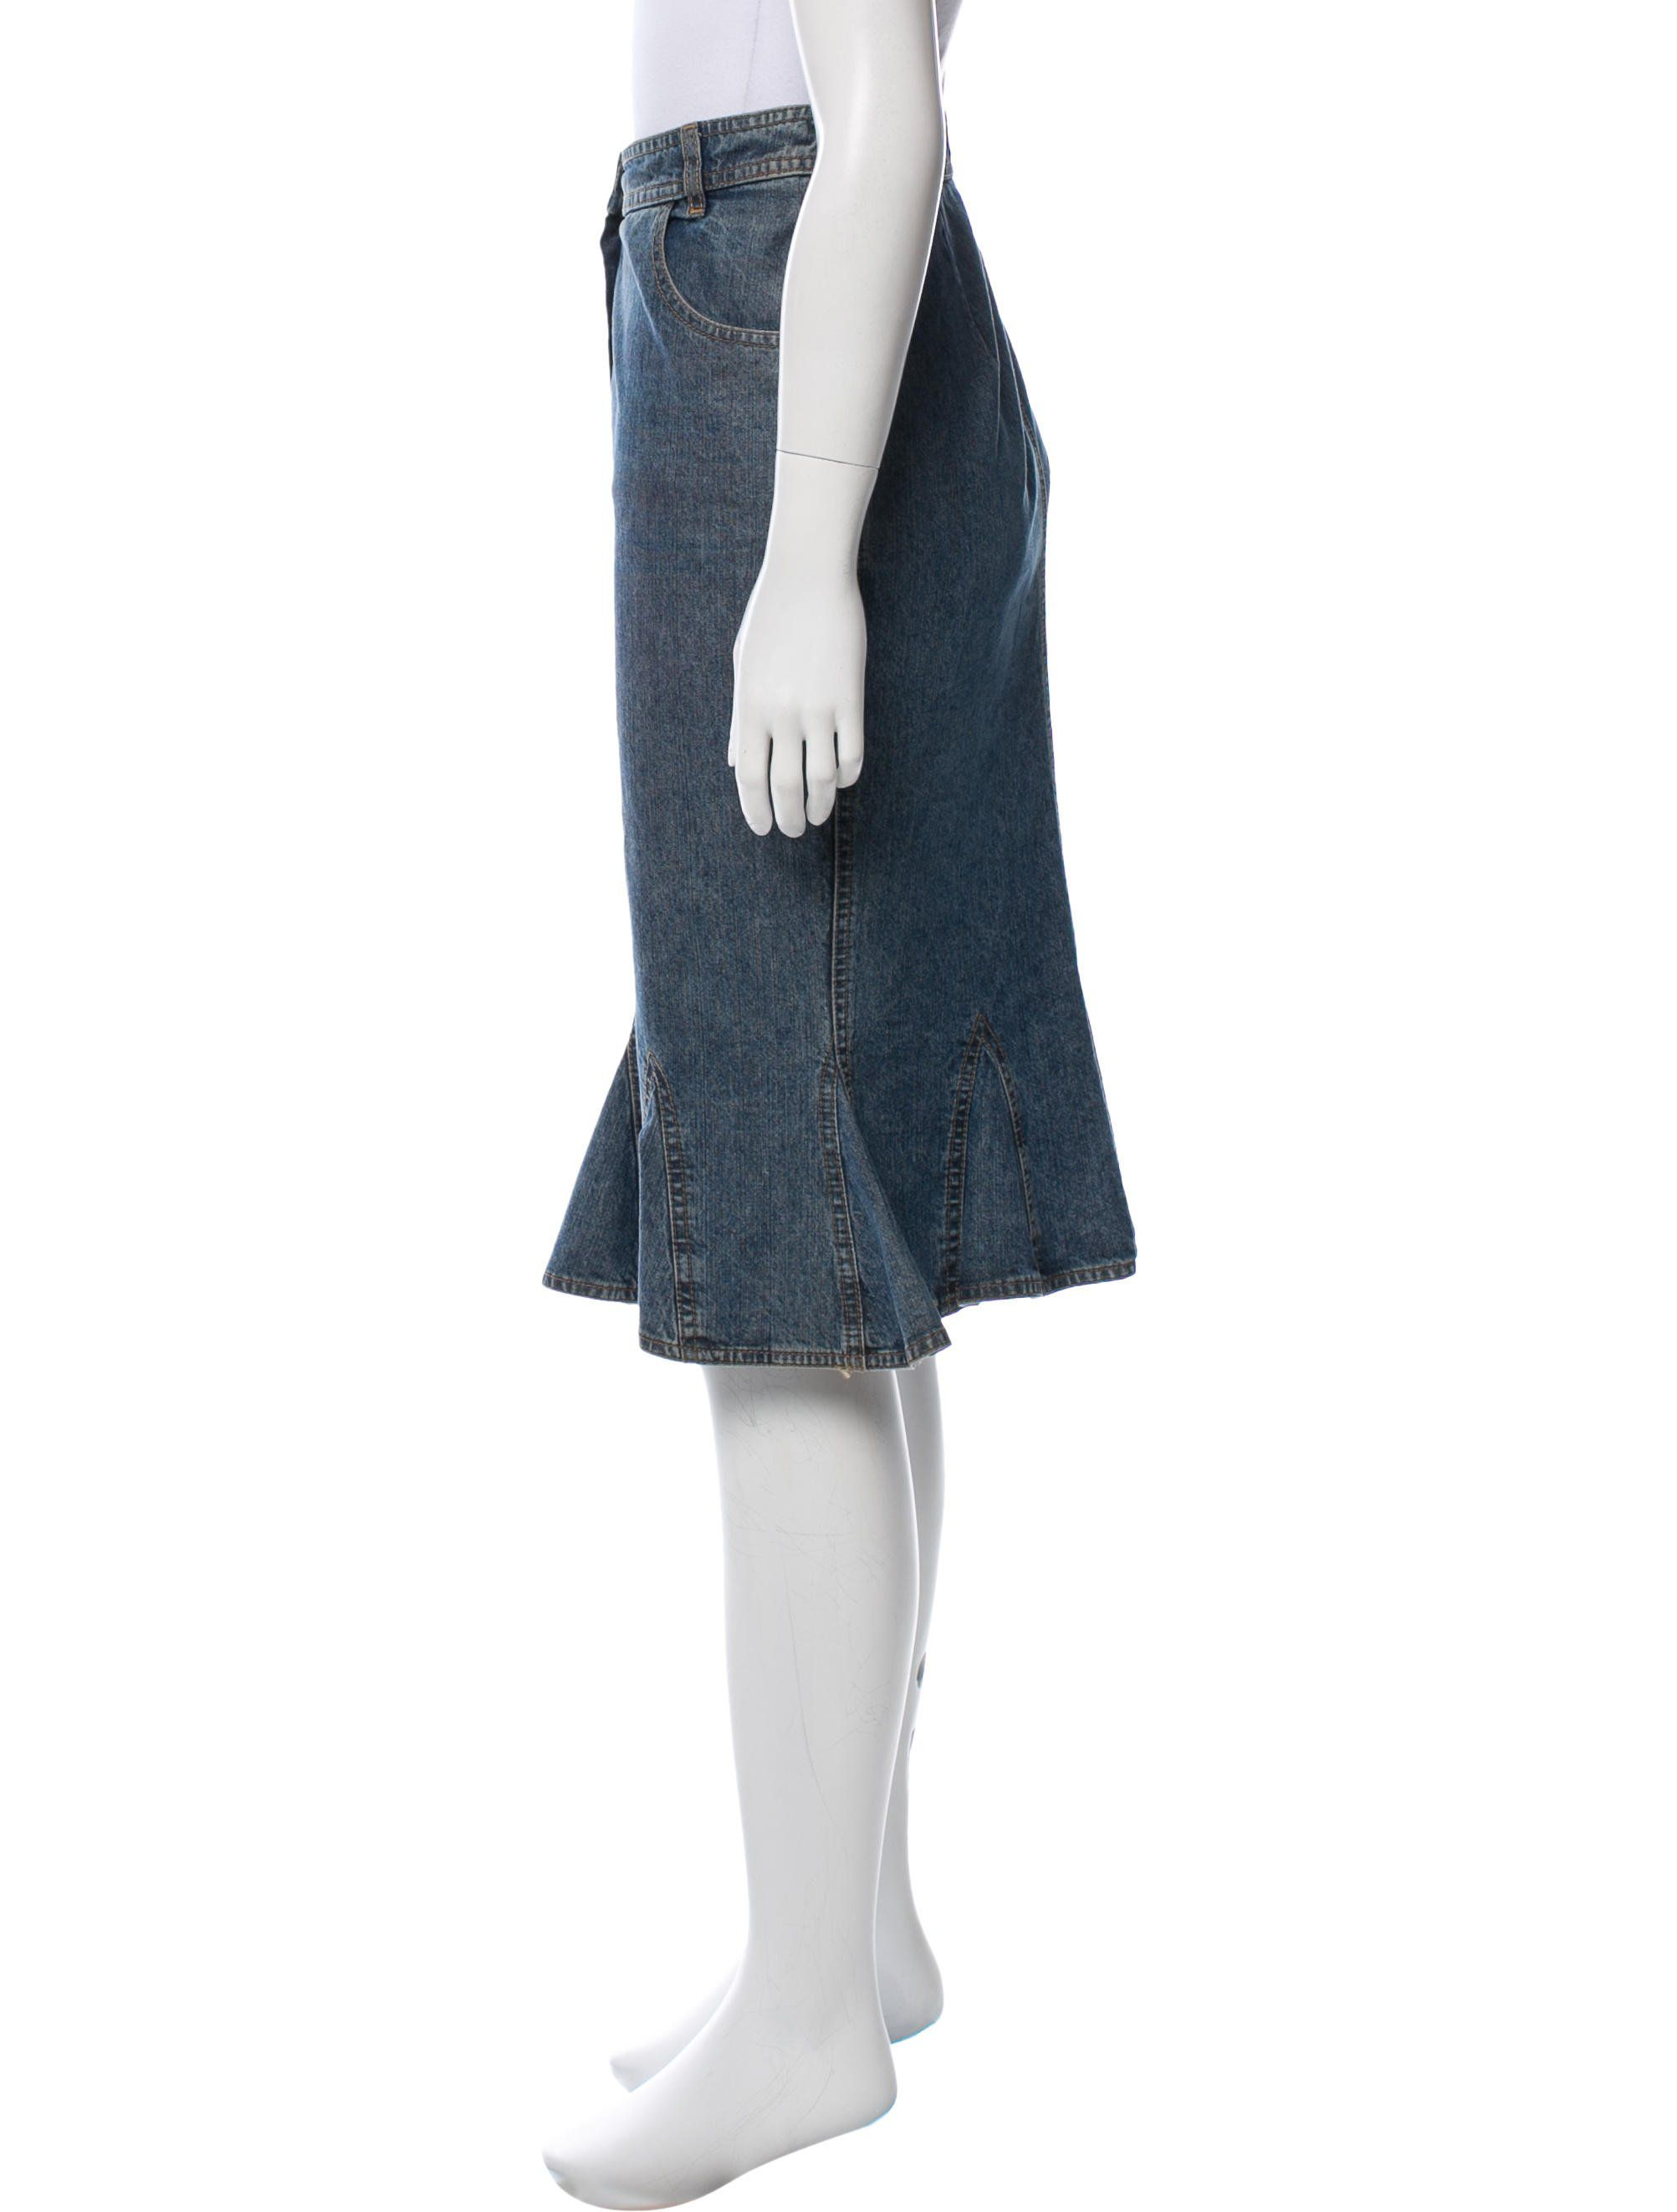 3b032bcd6 Medium wash blue Christian Dior silk denim skirt with contrast stitching  and zip closure at front.